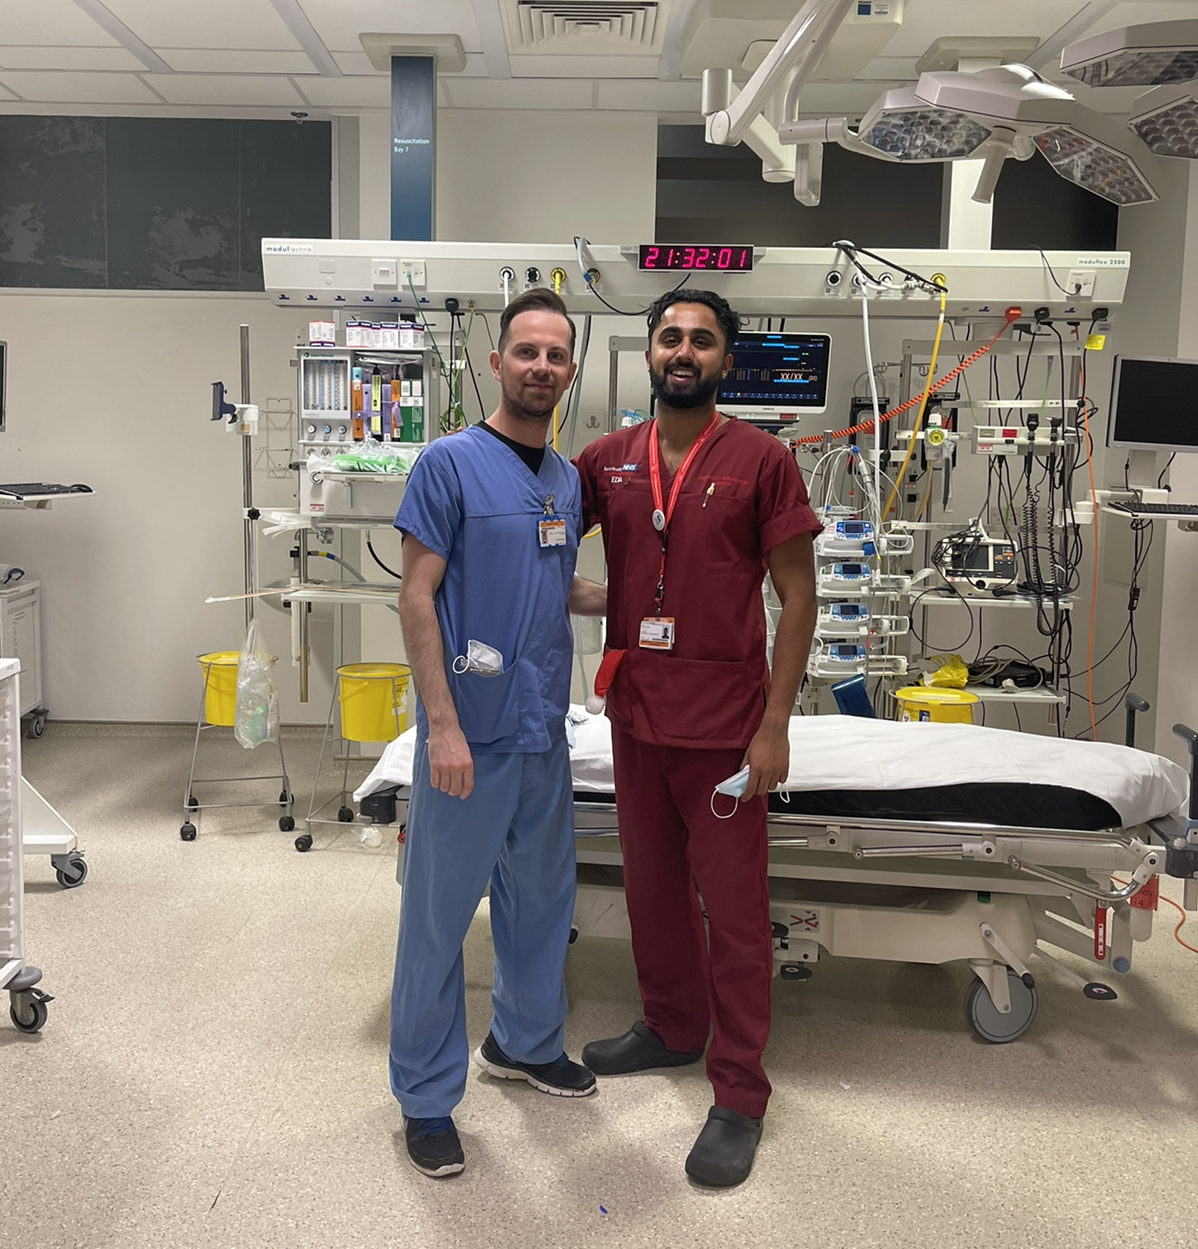 Balal Khan is a final year dental student. He talks us through what it was like having a part-time job in A&E during the COVID-19 pandemic